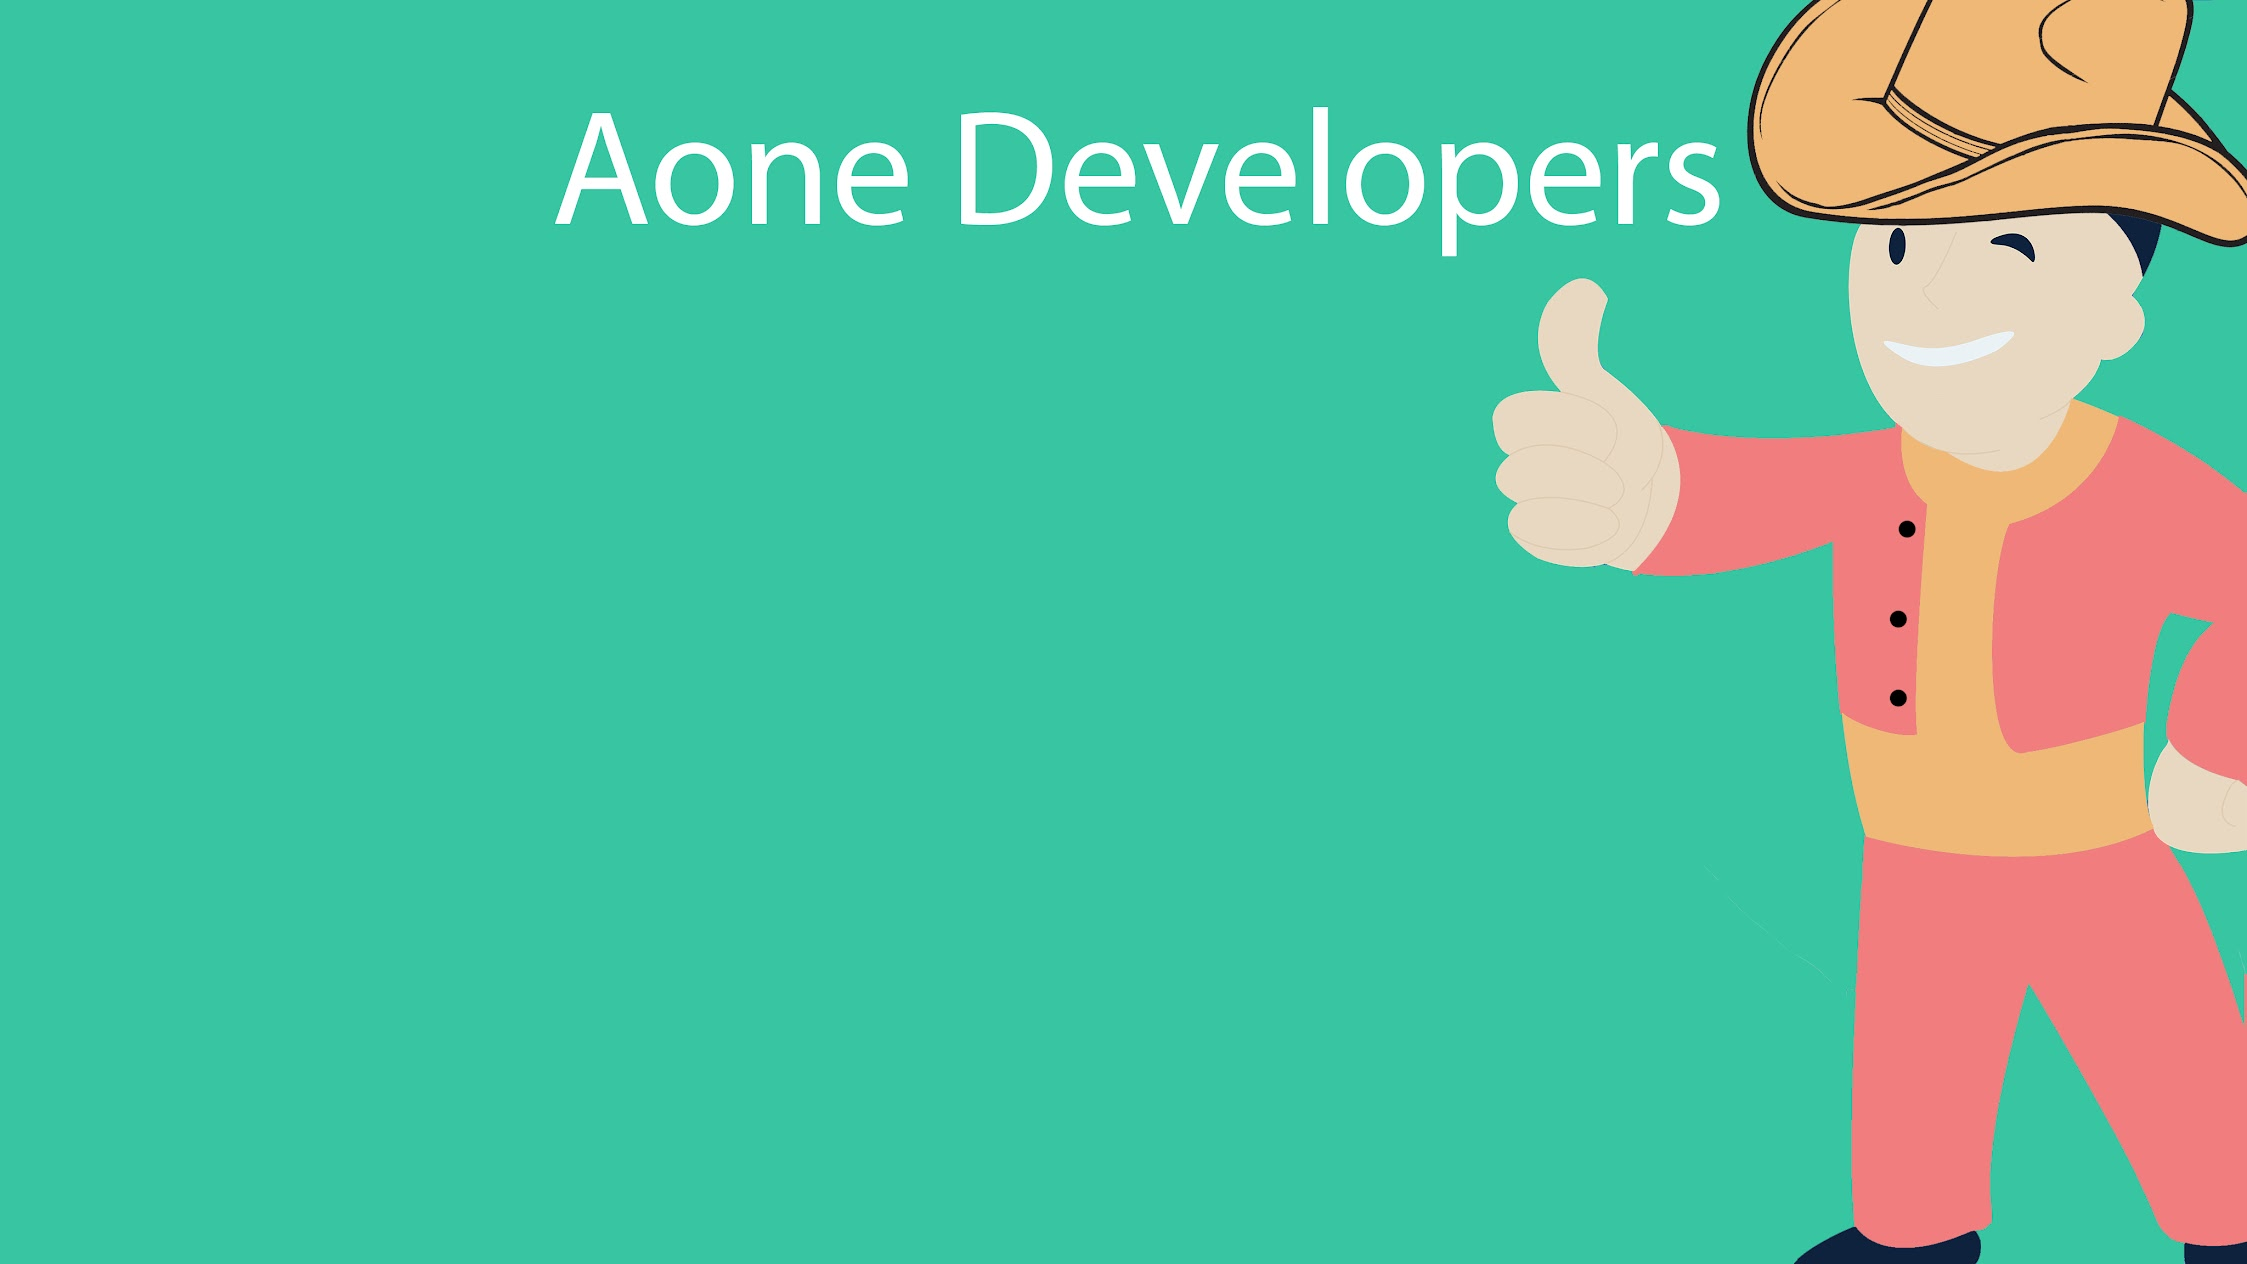 Aone Developers